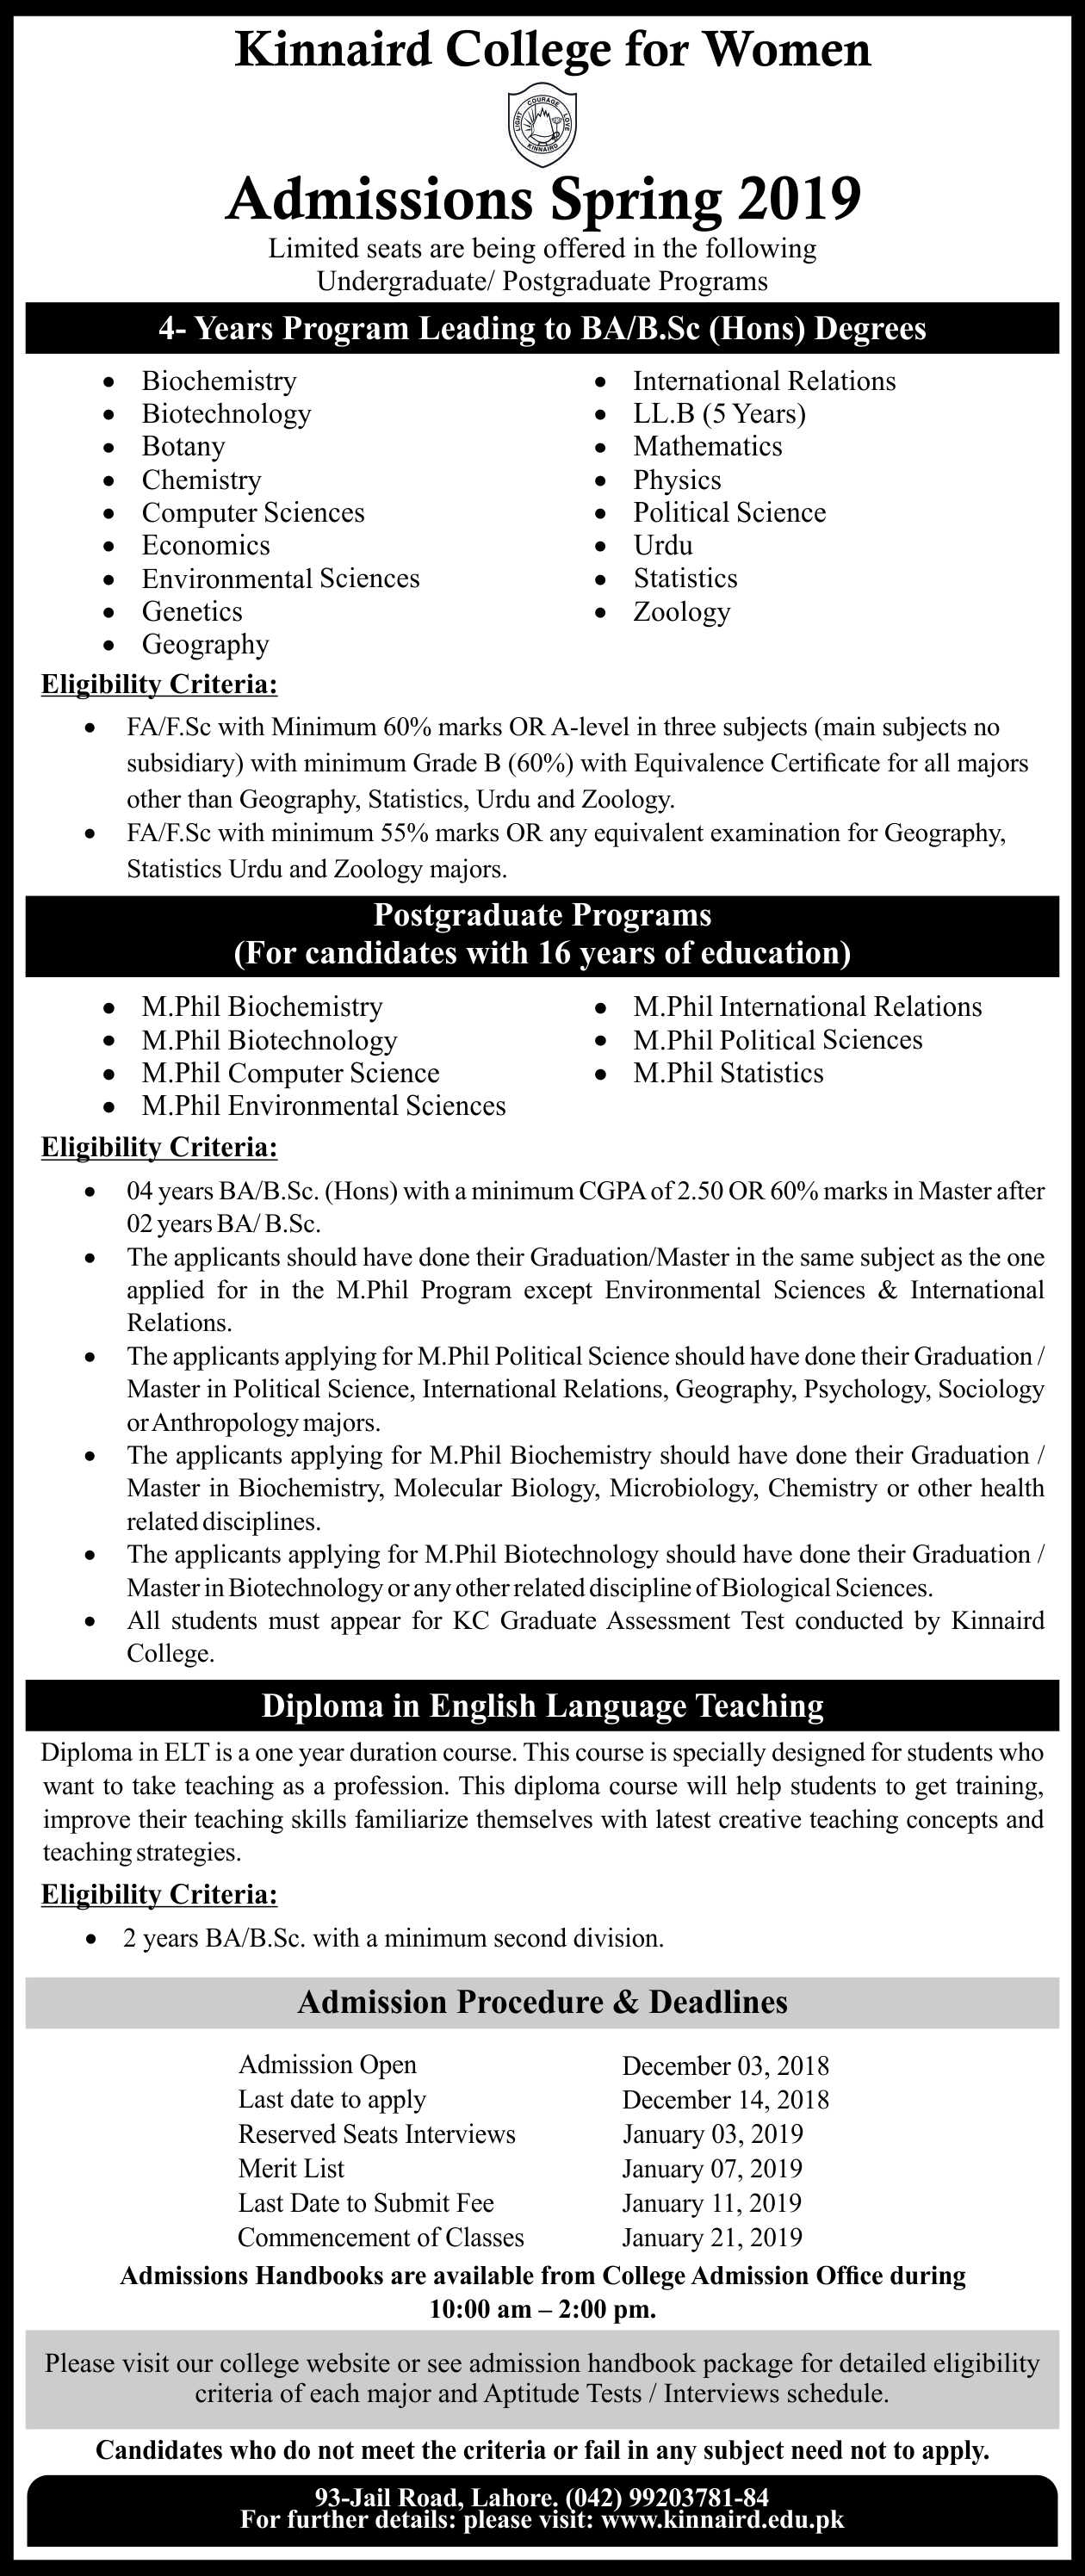 kinnaird College for Women Spring Admissions